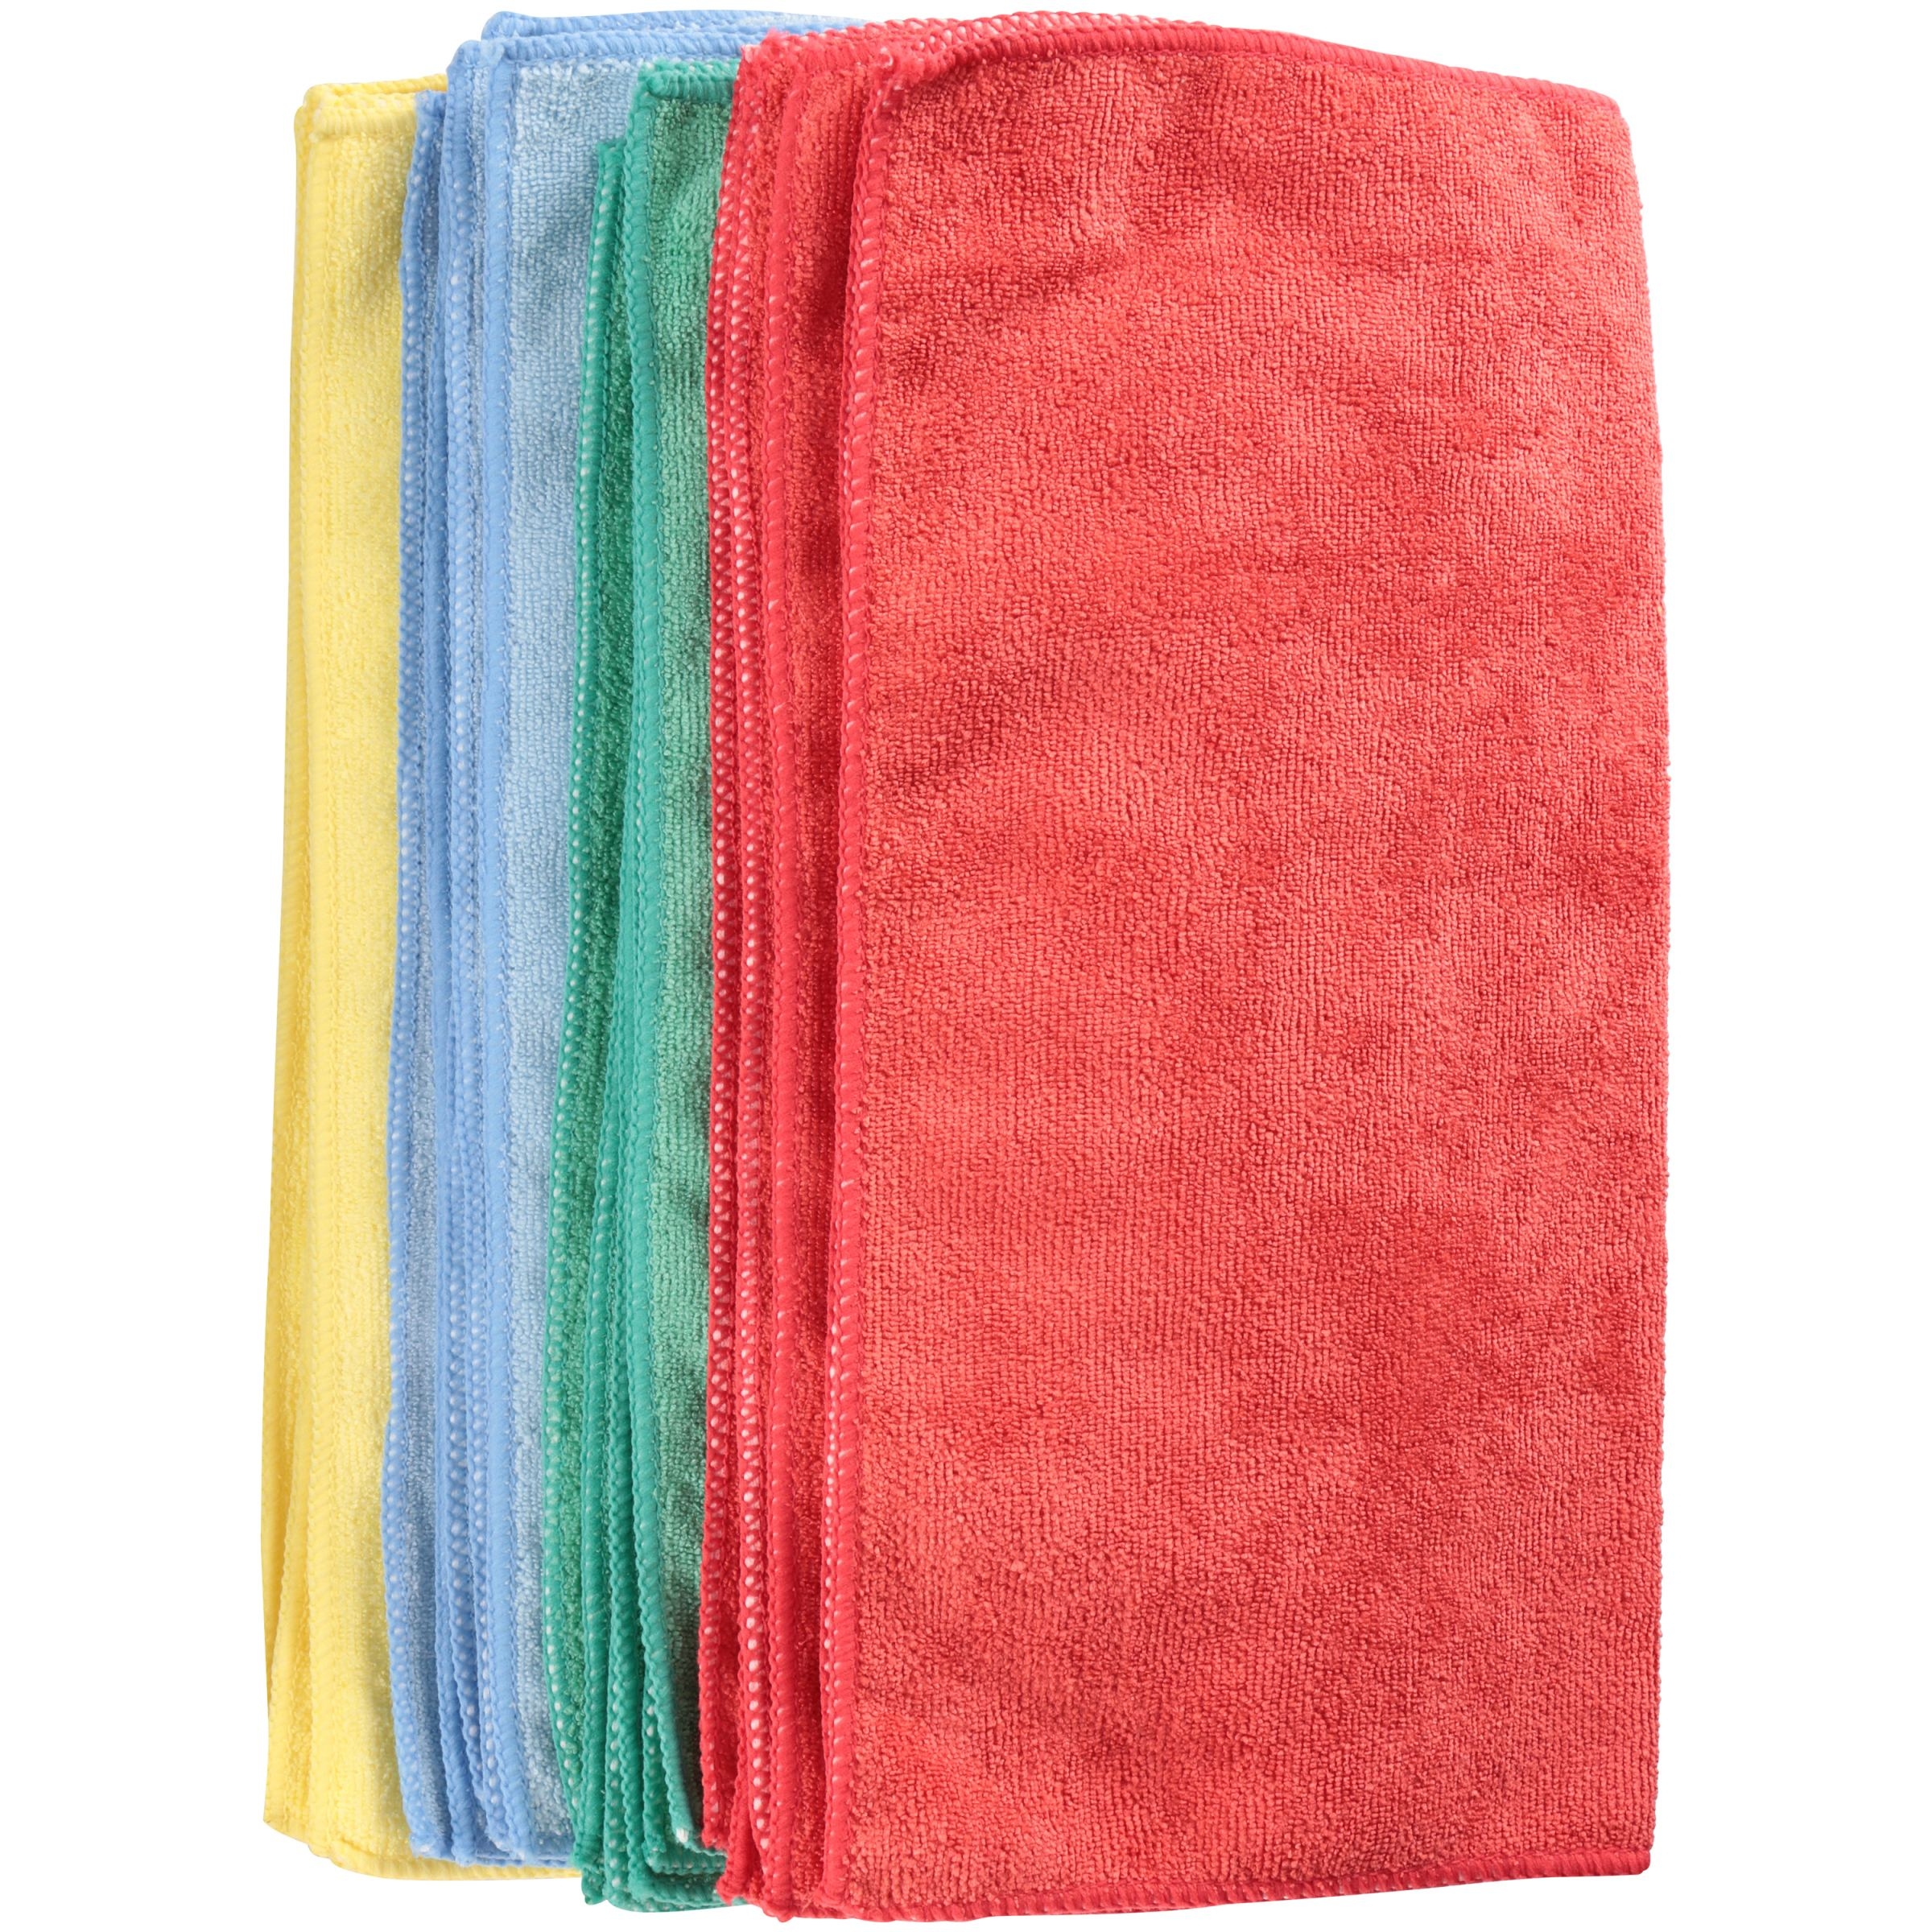 "Zwipes Commercial Assorted Colors 16 x 16"" Microfiber Cleaning Towels 12 ct Package"